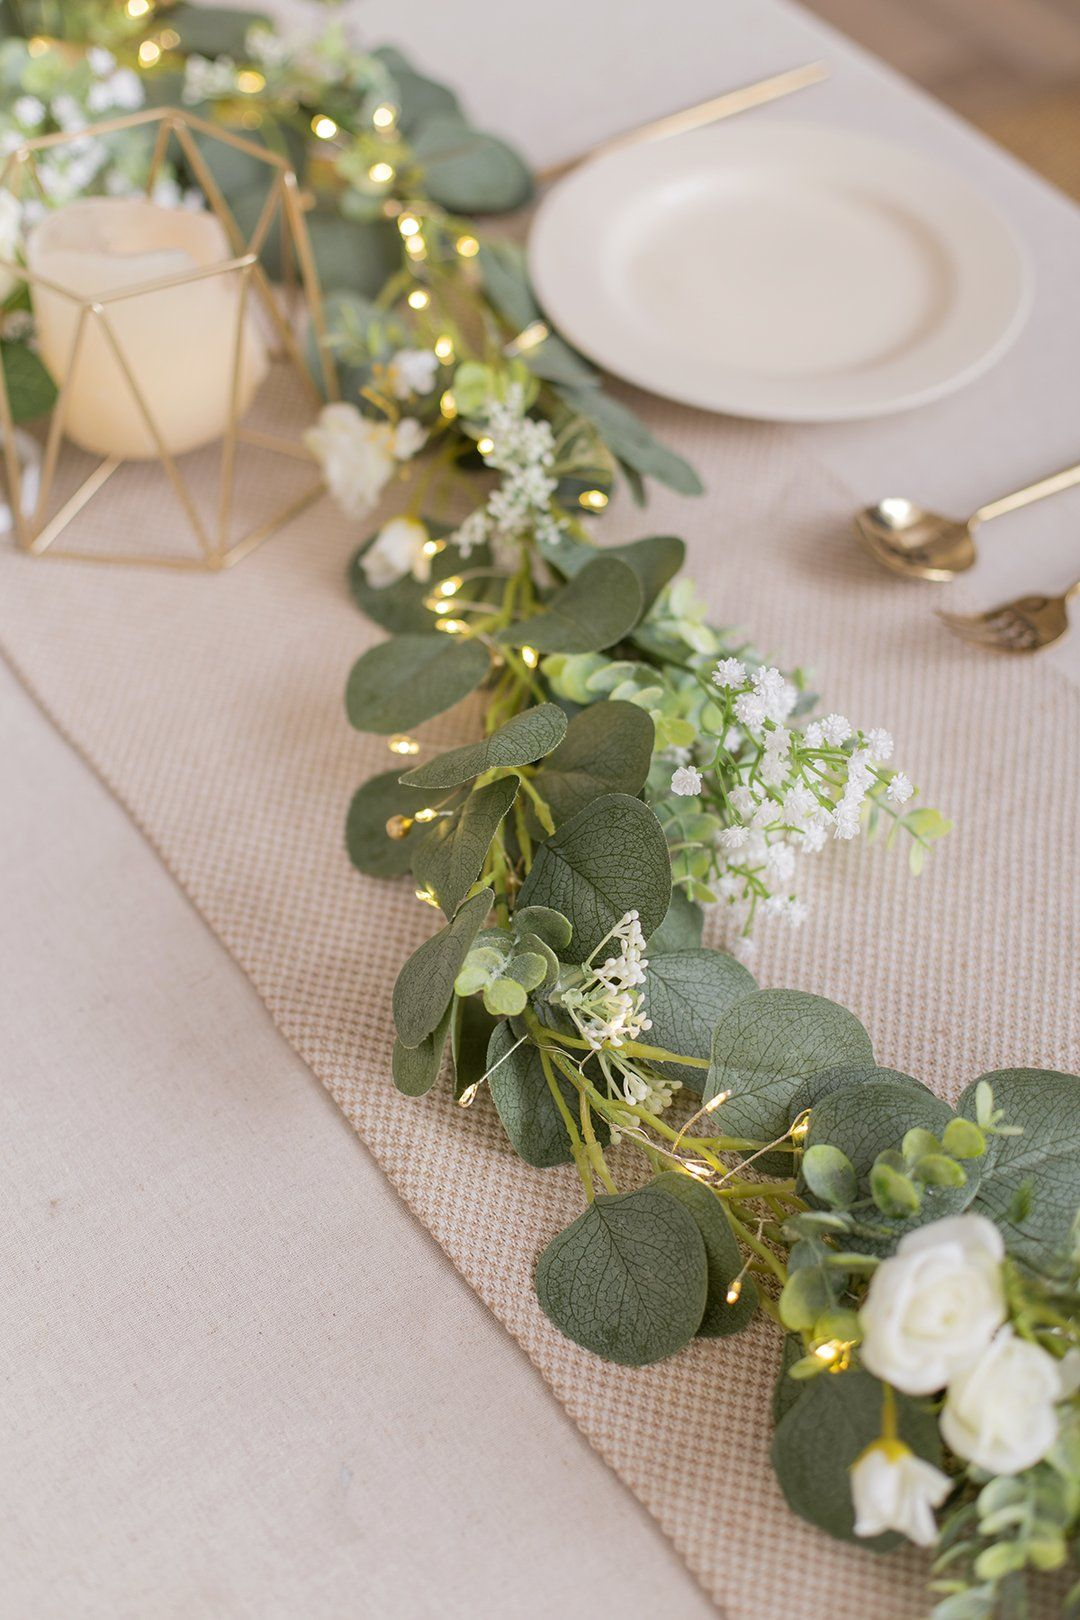 Eucalyptus Flower Garland with Fairy Lights 6.5FT - Ivory